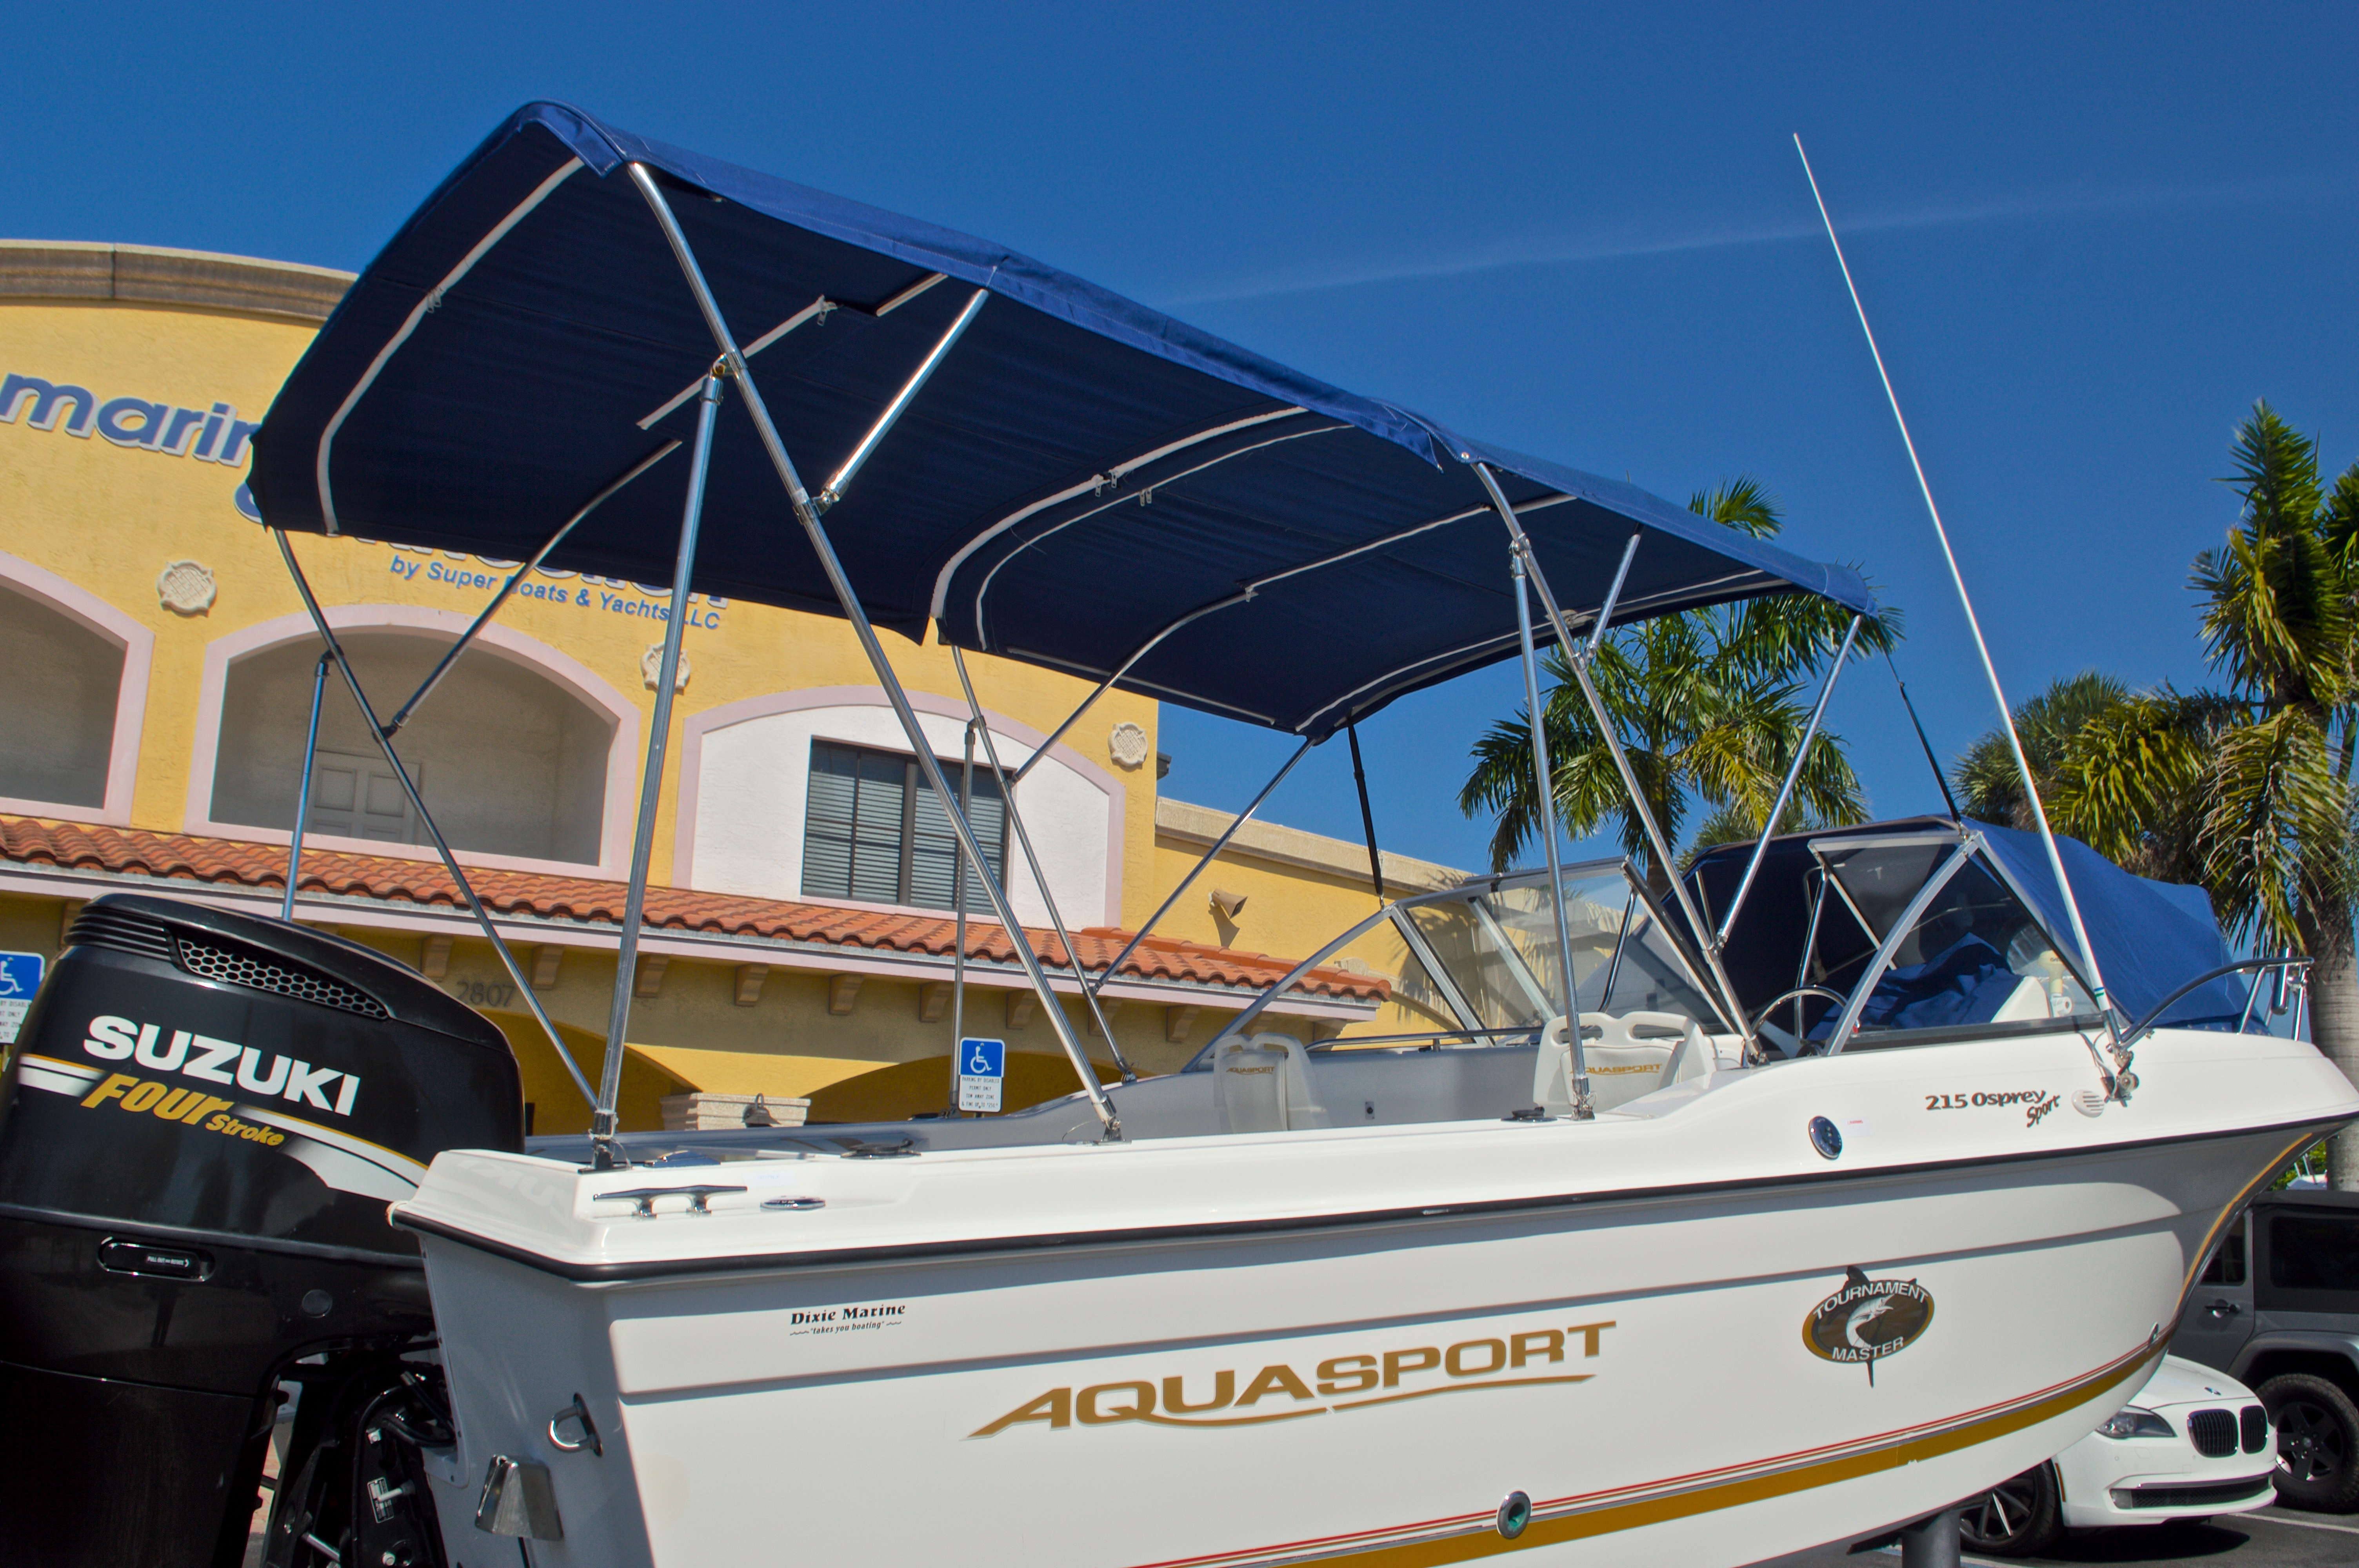 Thumbnail 8 for Used 2000 Aquasport 215 Osprey Sport DC boat for sale in West Palm Beach, FL